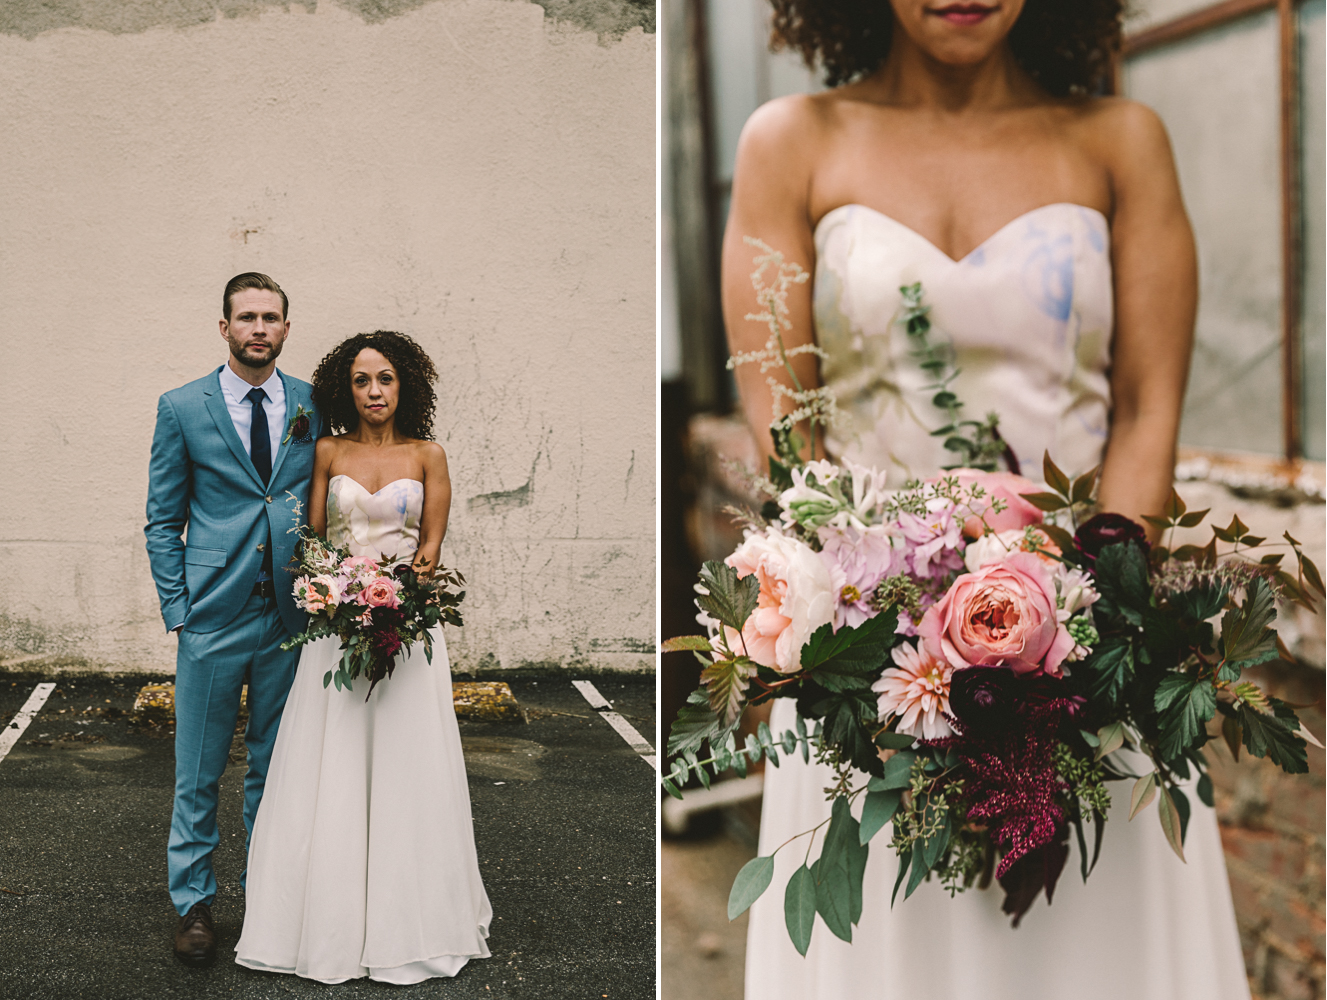 steelcutflowerco loose bouquet baltimore wedding photographer .jpg